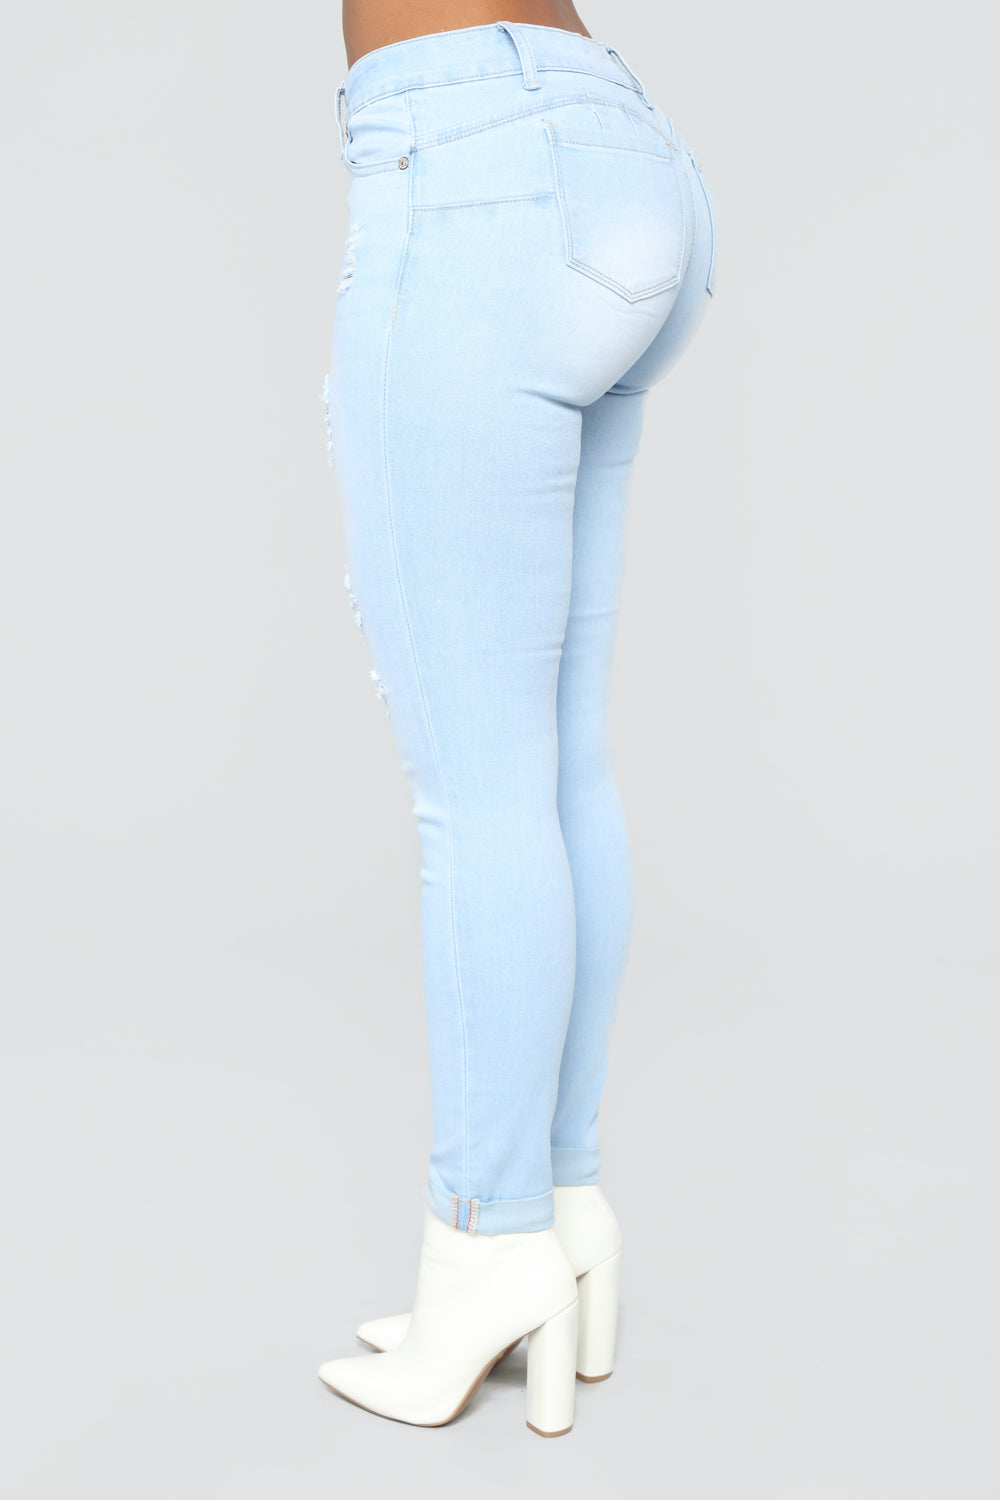 Work For It Booty Shaping Jeans - Light Blue